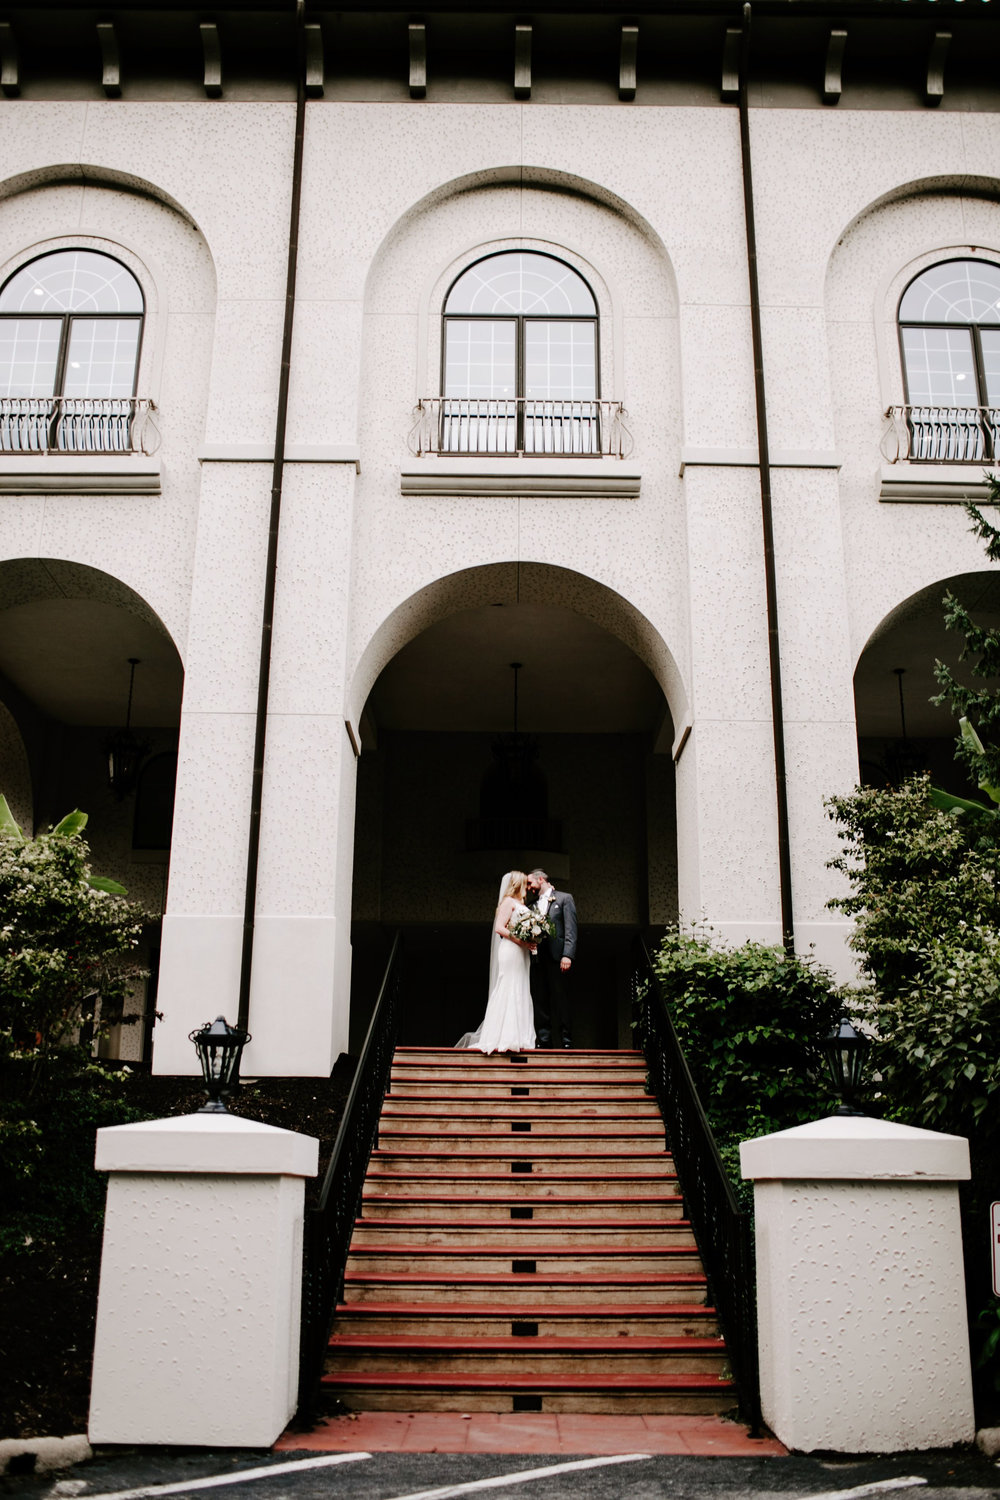 Shelby and Roger Hillcrest Country Club Wedding Indianapolis Indiana Emily Elyse Wehner Photography LLC-554.jpg